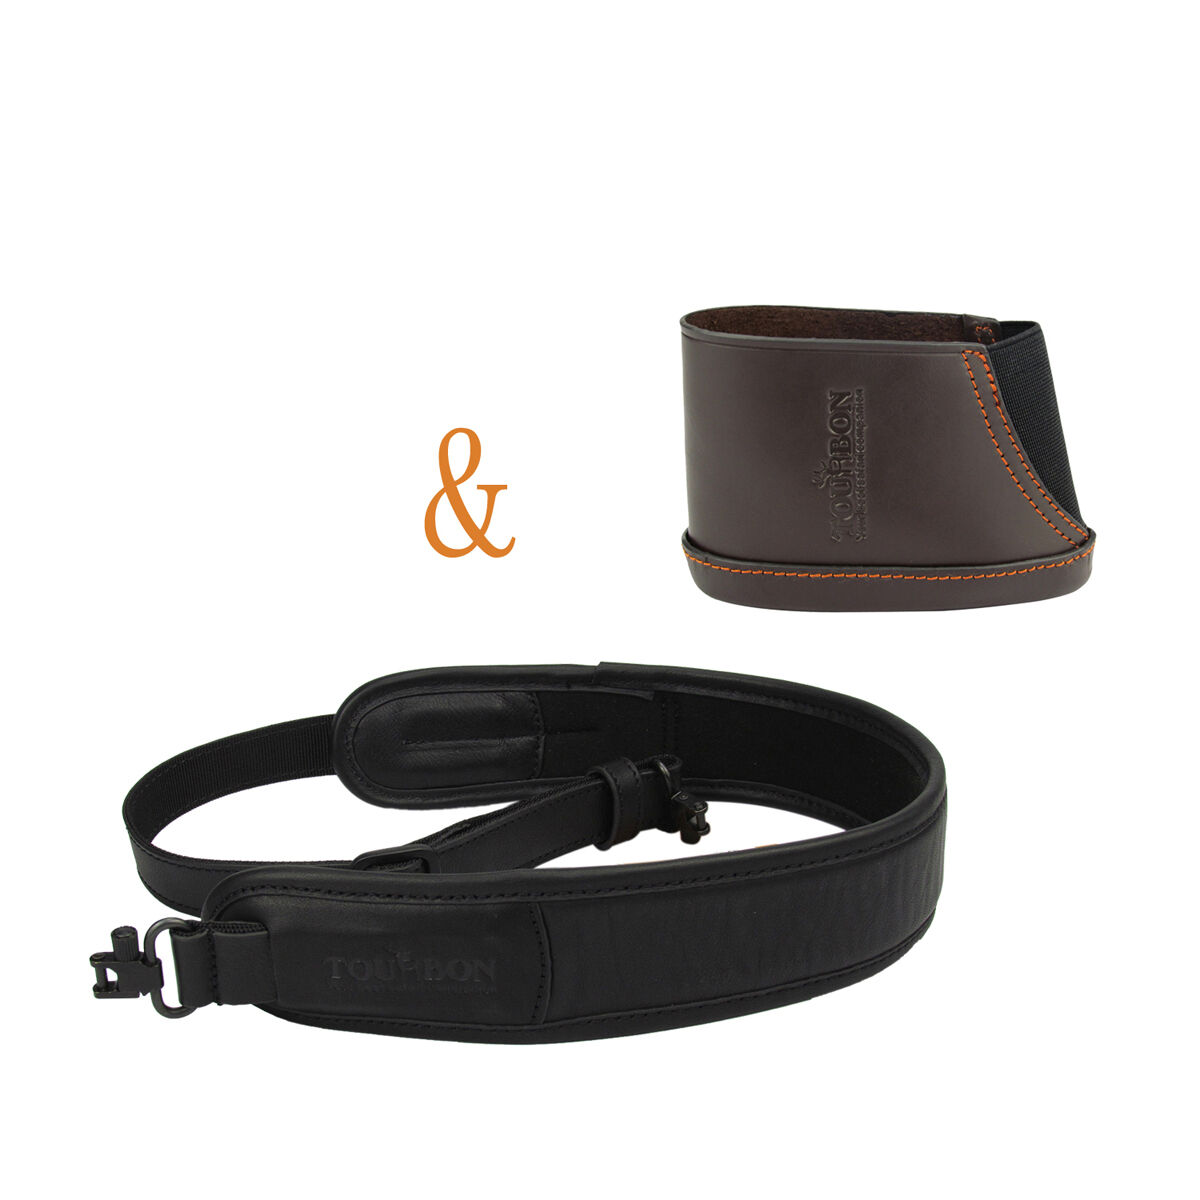 Tourbon Rifle Ammo Sling  Swivels Gun Strap & Recoil Pad Slip-on Leather Hunting  is discounted